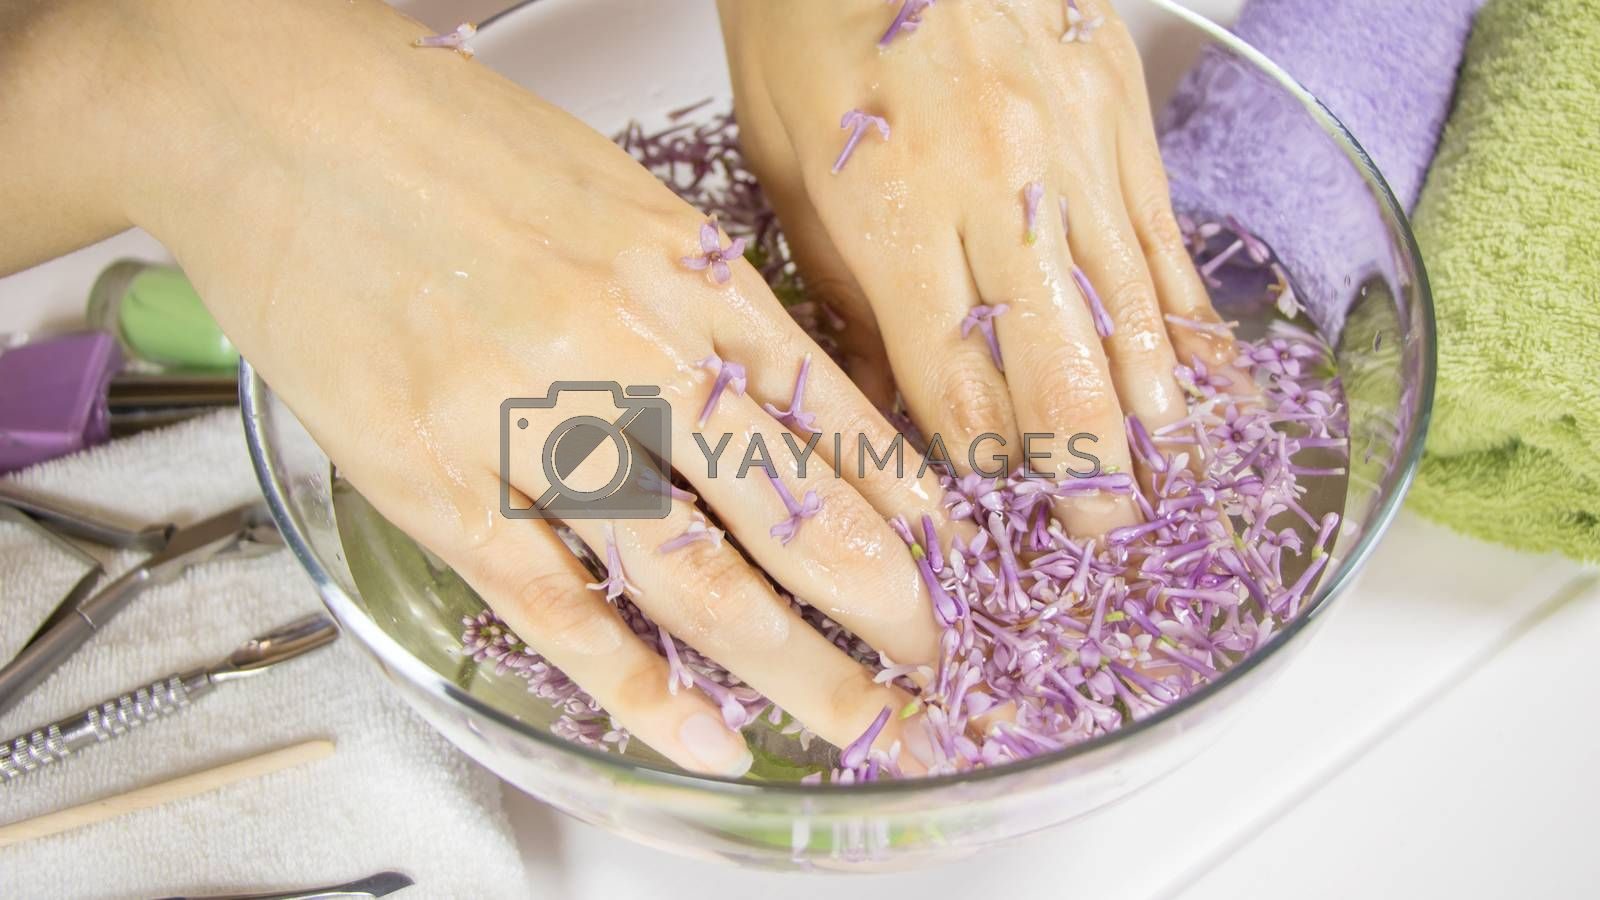 Manicure, nail SPA. Hands of a woman in a bath with flowers. Sensuality, skincare, feminine, salon, wash, wealth, therapy, cosmetics, treatment, relax, dayspa, aromatherapy